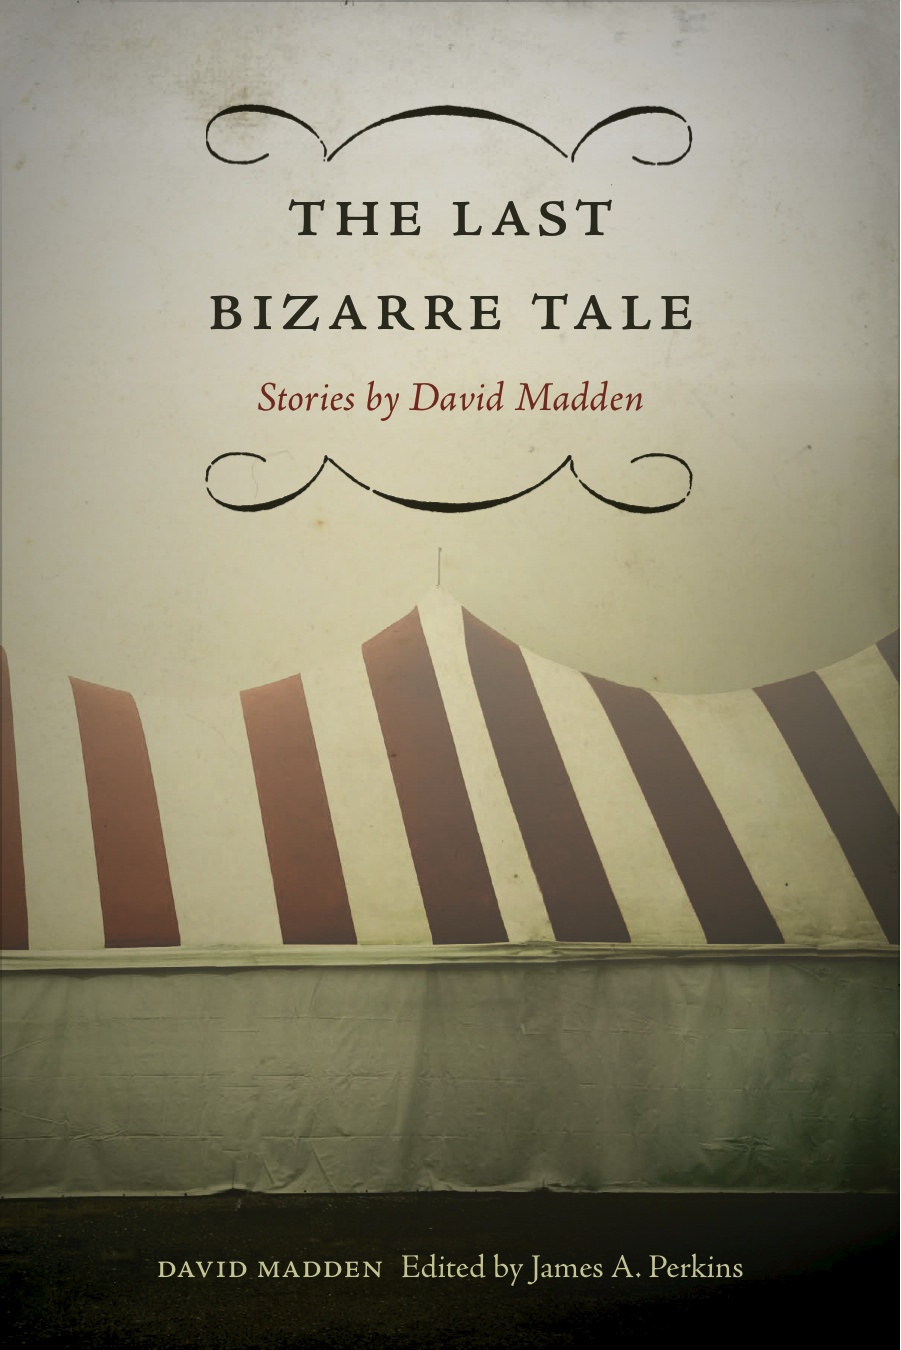 The Last Bizarre Take - Latest novel by David Madden